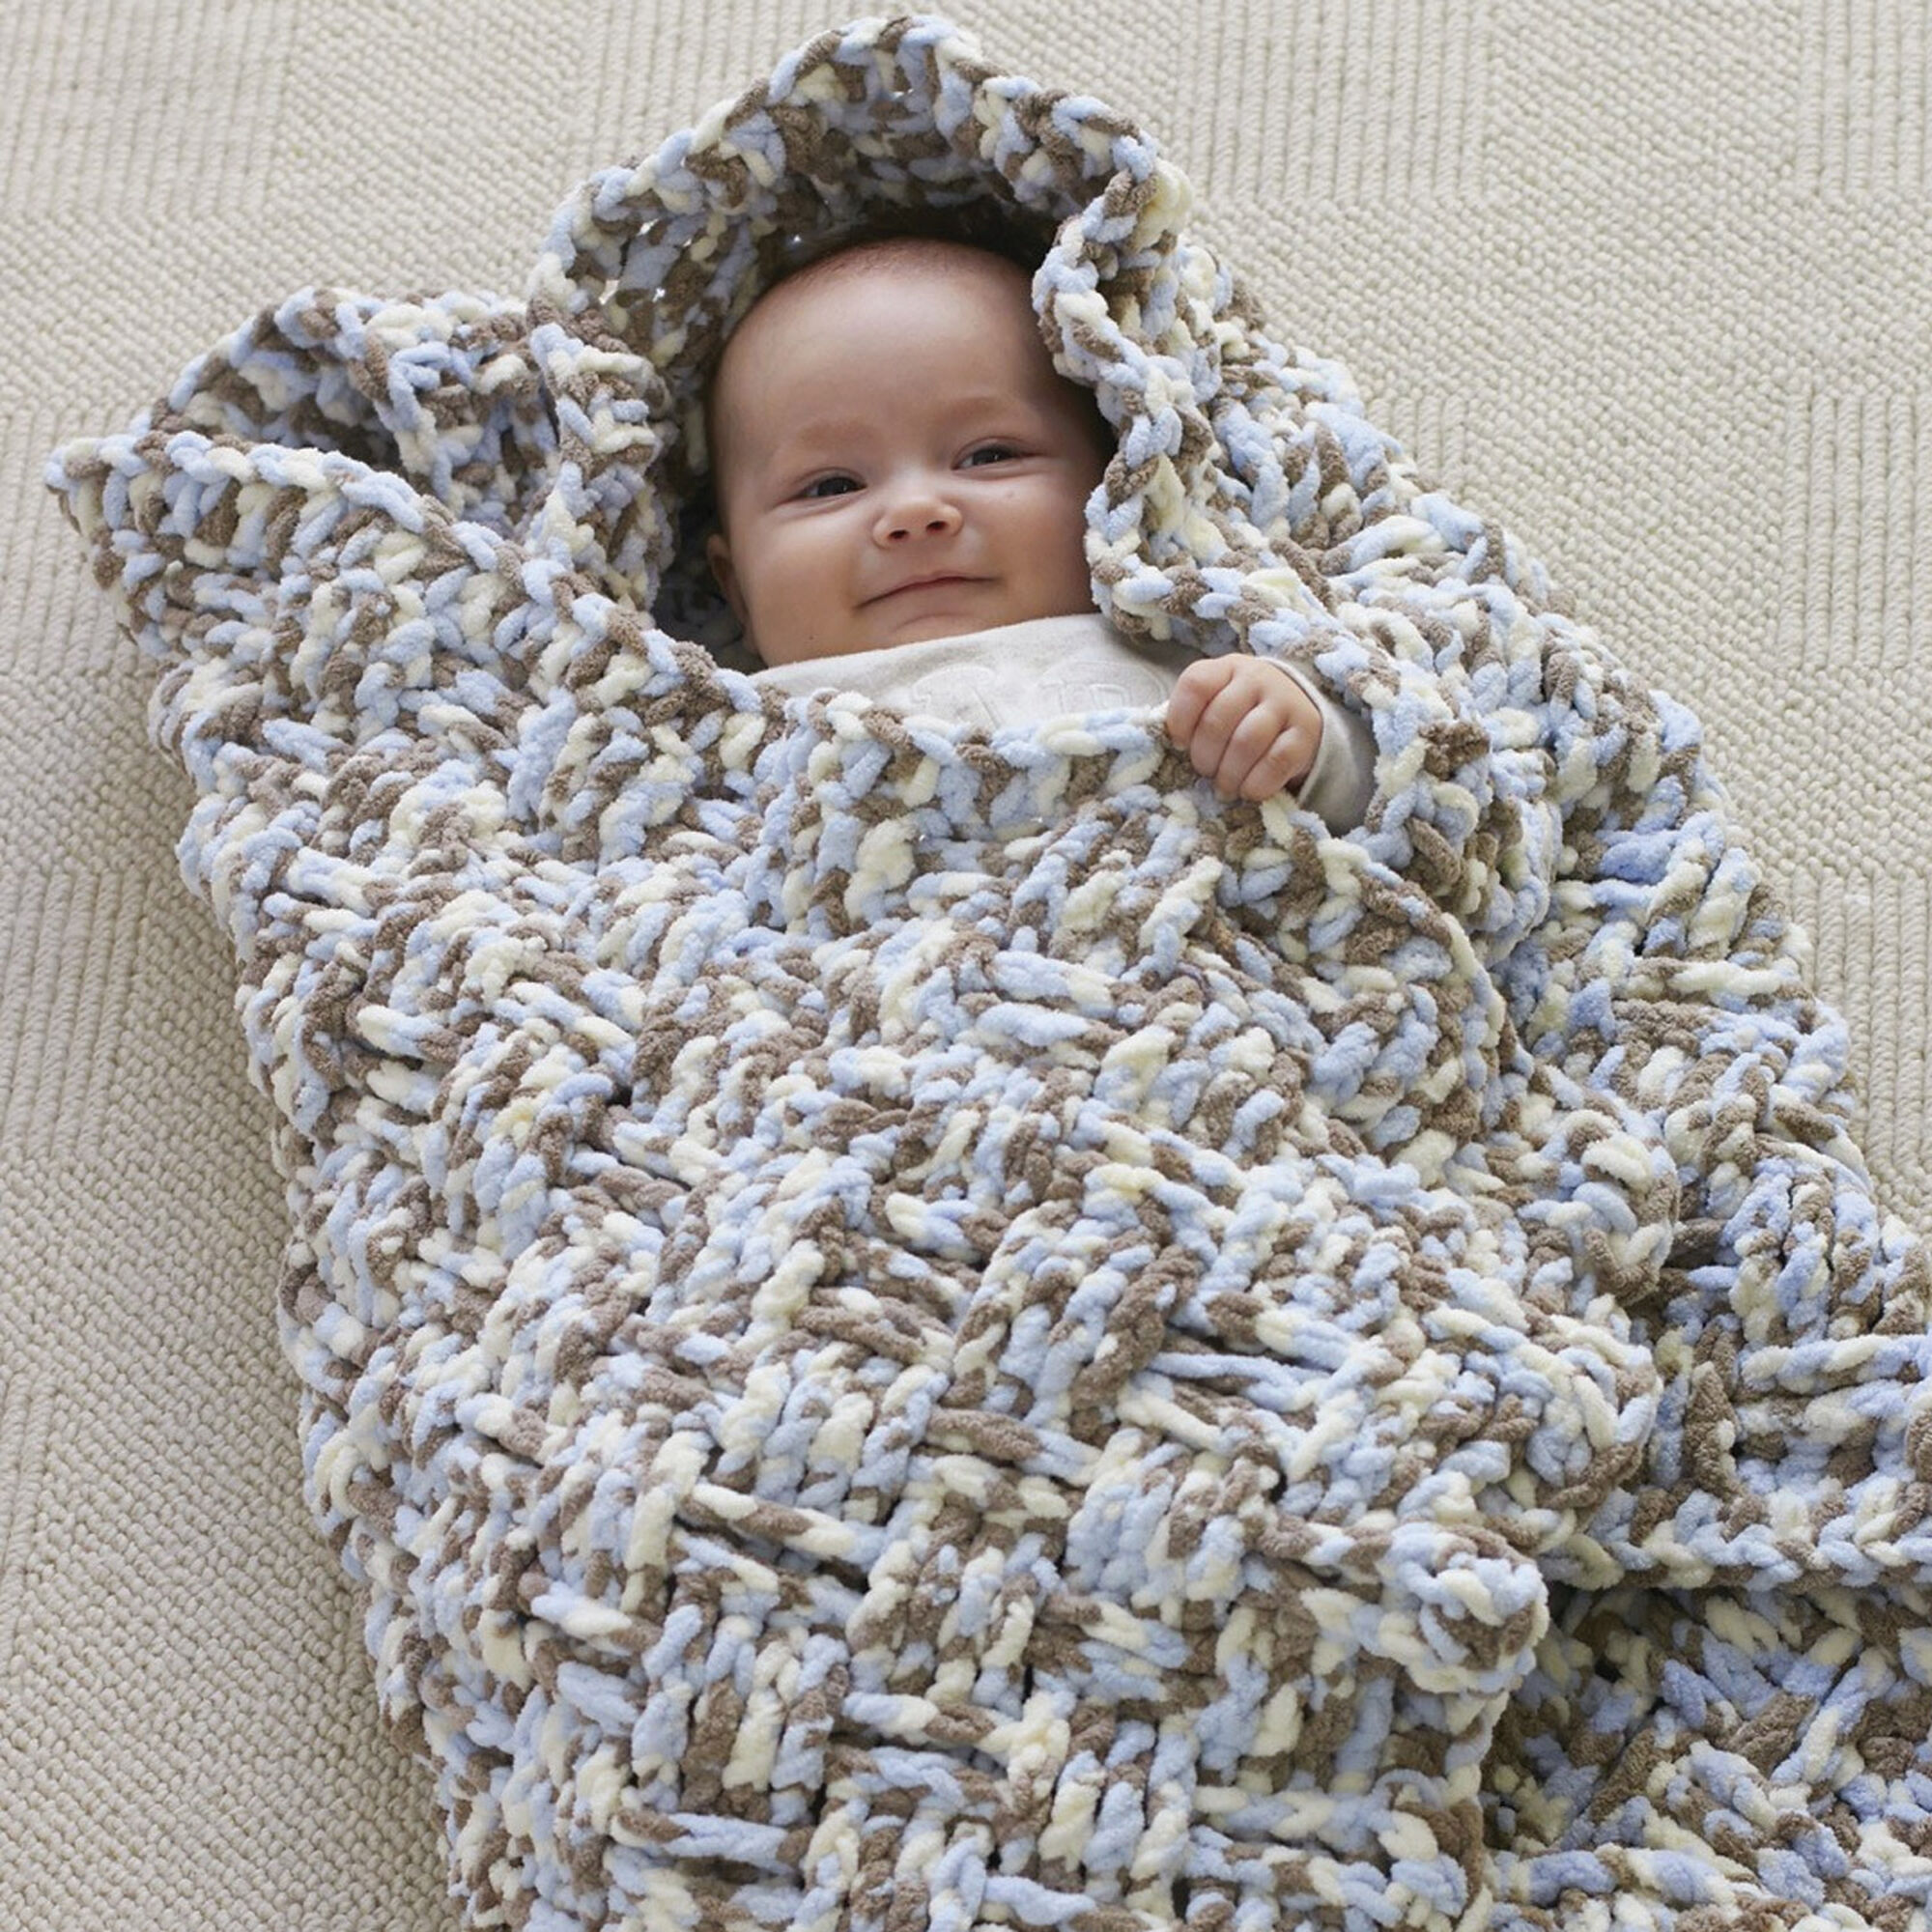 Bernat Dream Weaver Blanket Pattern | Yarnspirations